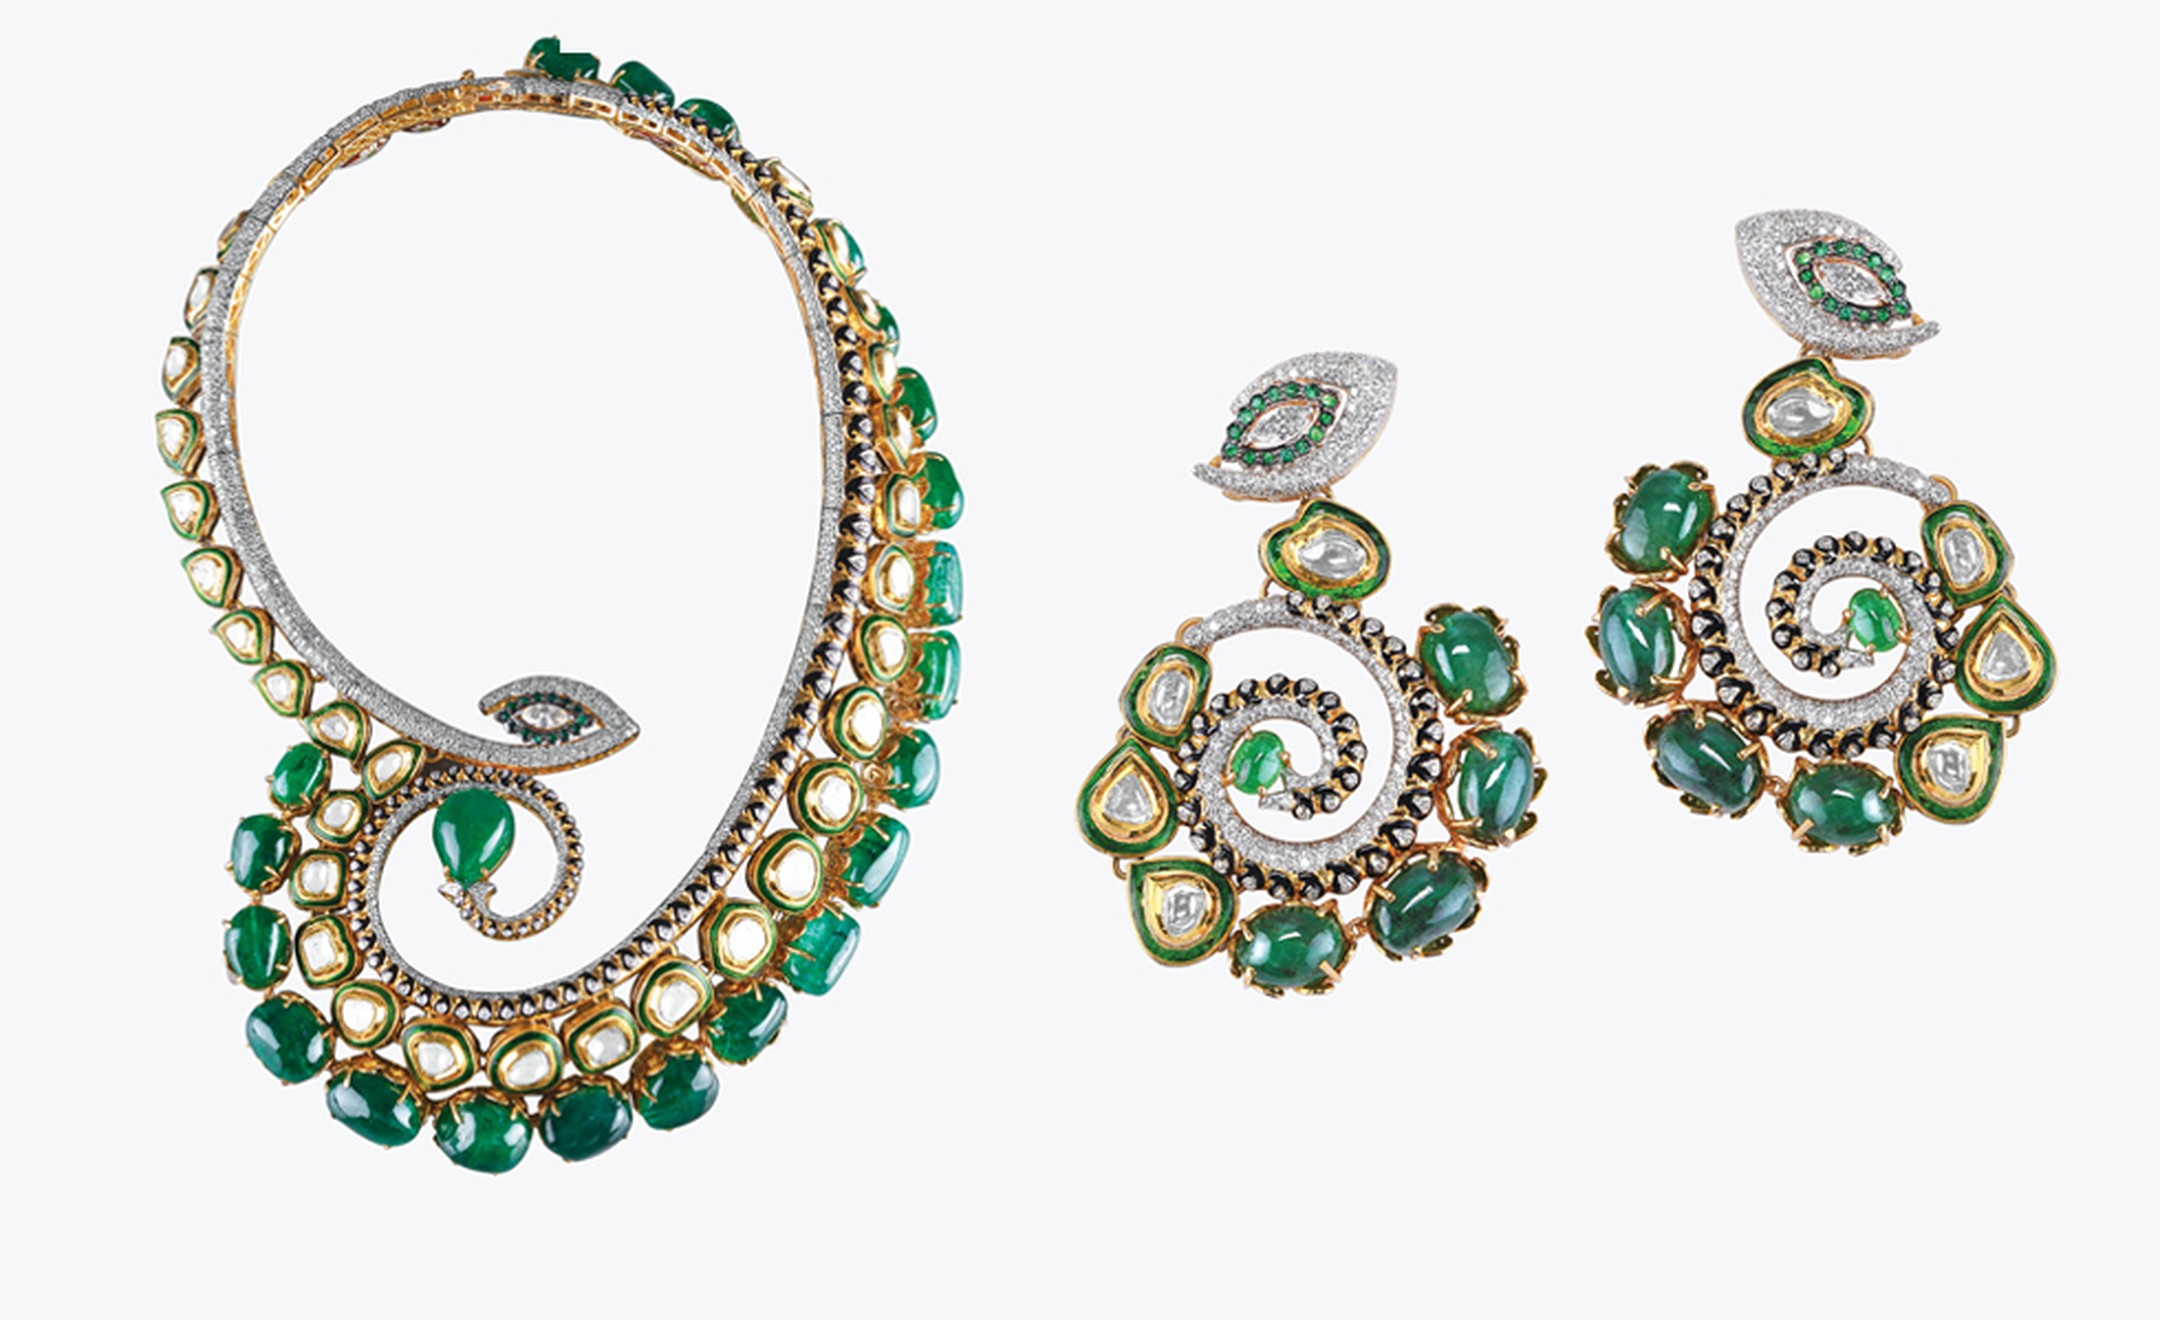 Sawansukha,Kolkata. Necklace and earrings, Zambian emeralds and diamonds in yellow gold. Sold as set, price from $120,00.